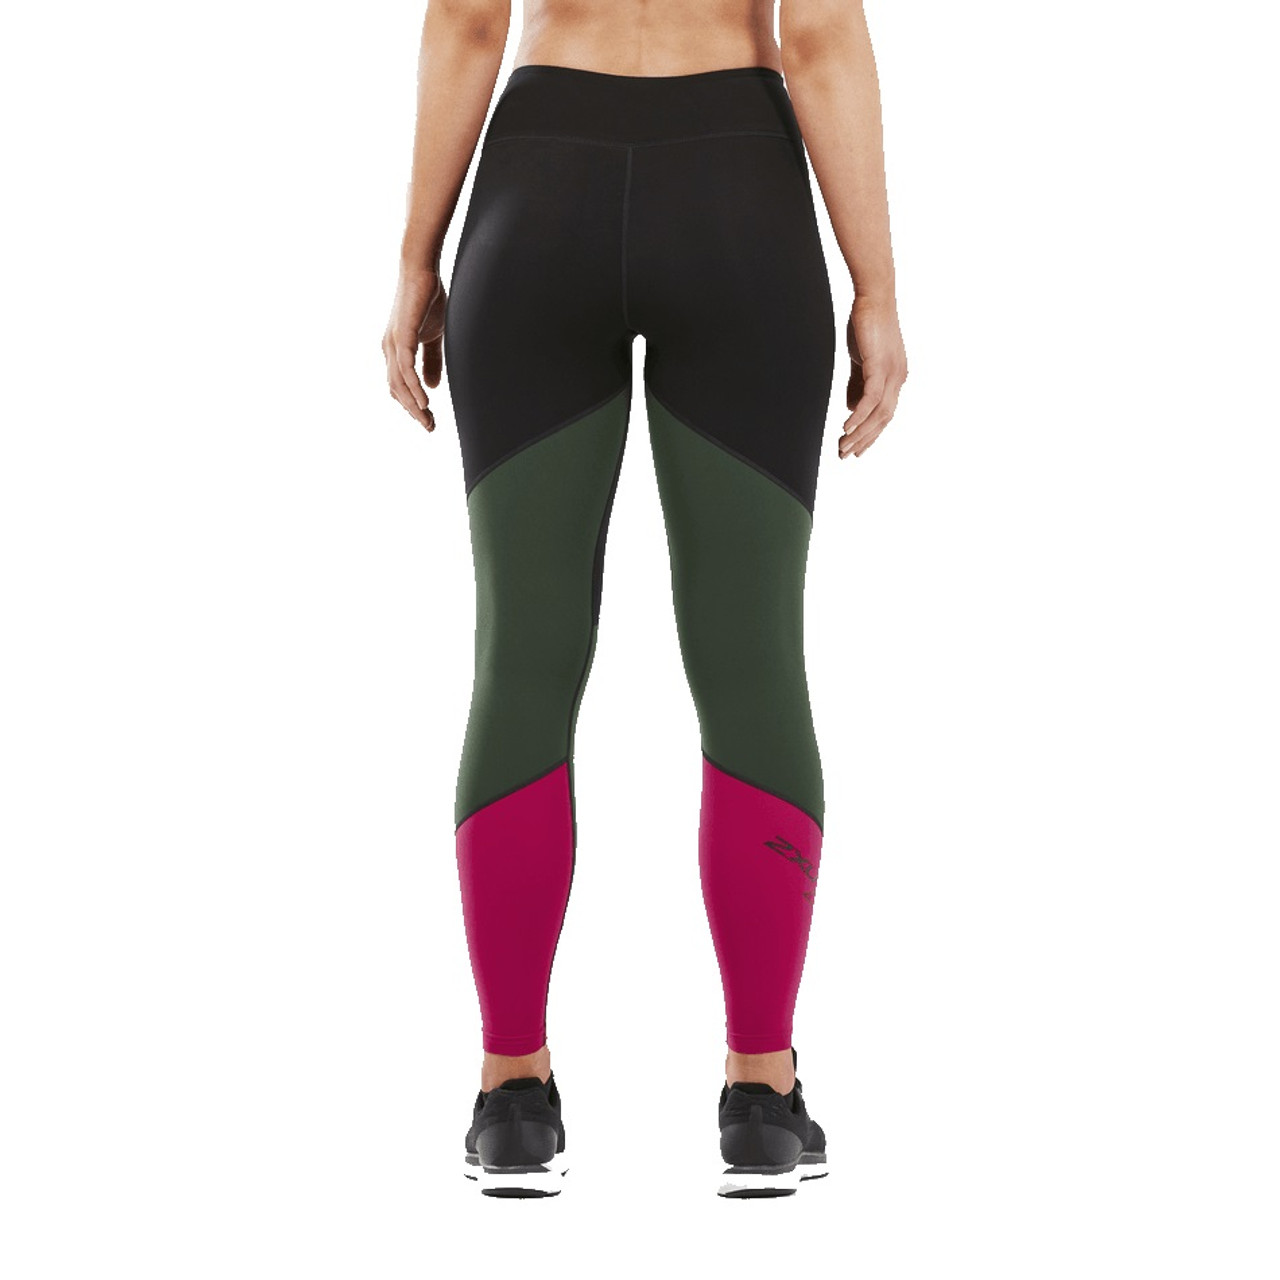 9dd60a6aef ... 2XU Women's Fitness Mid-Rise Color Block Compression Tight - Back